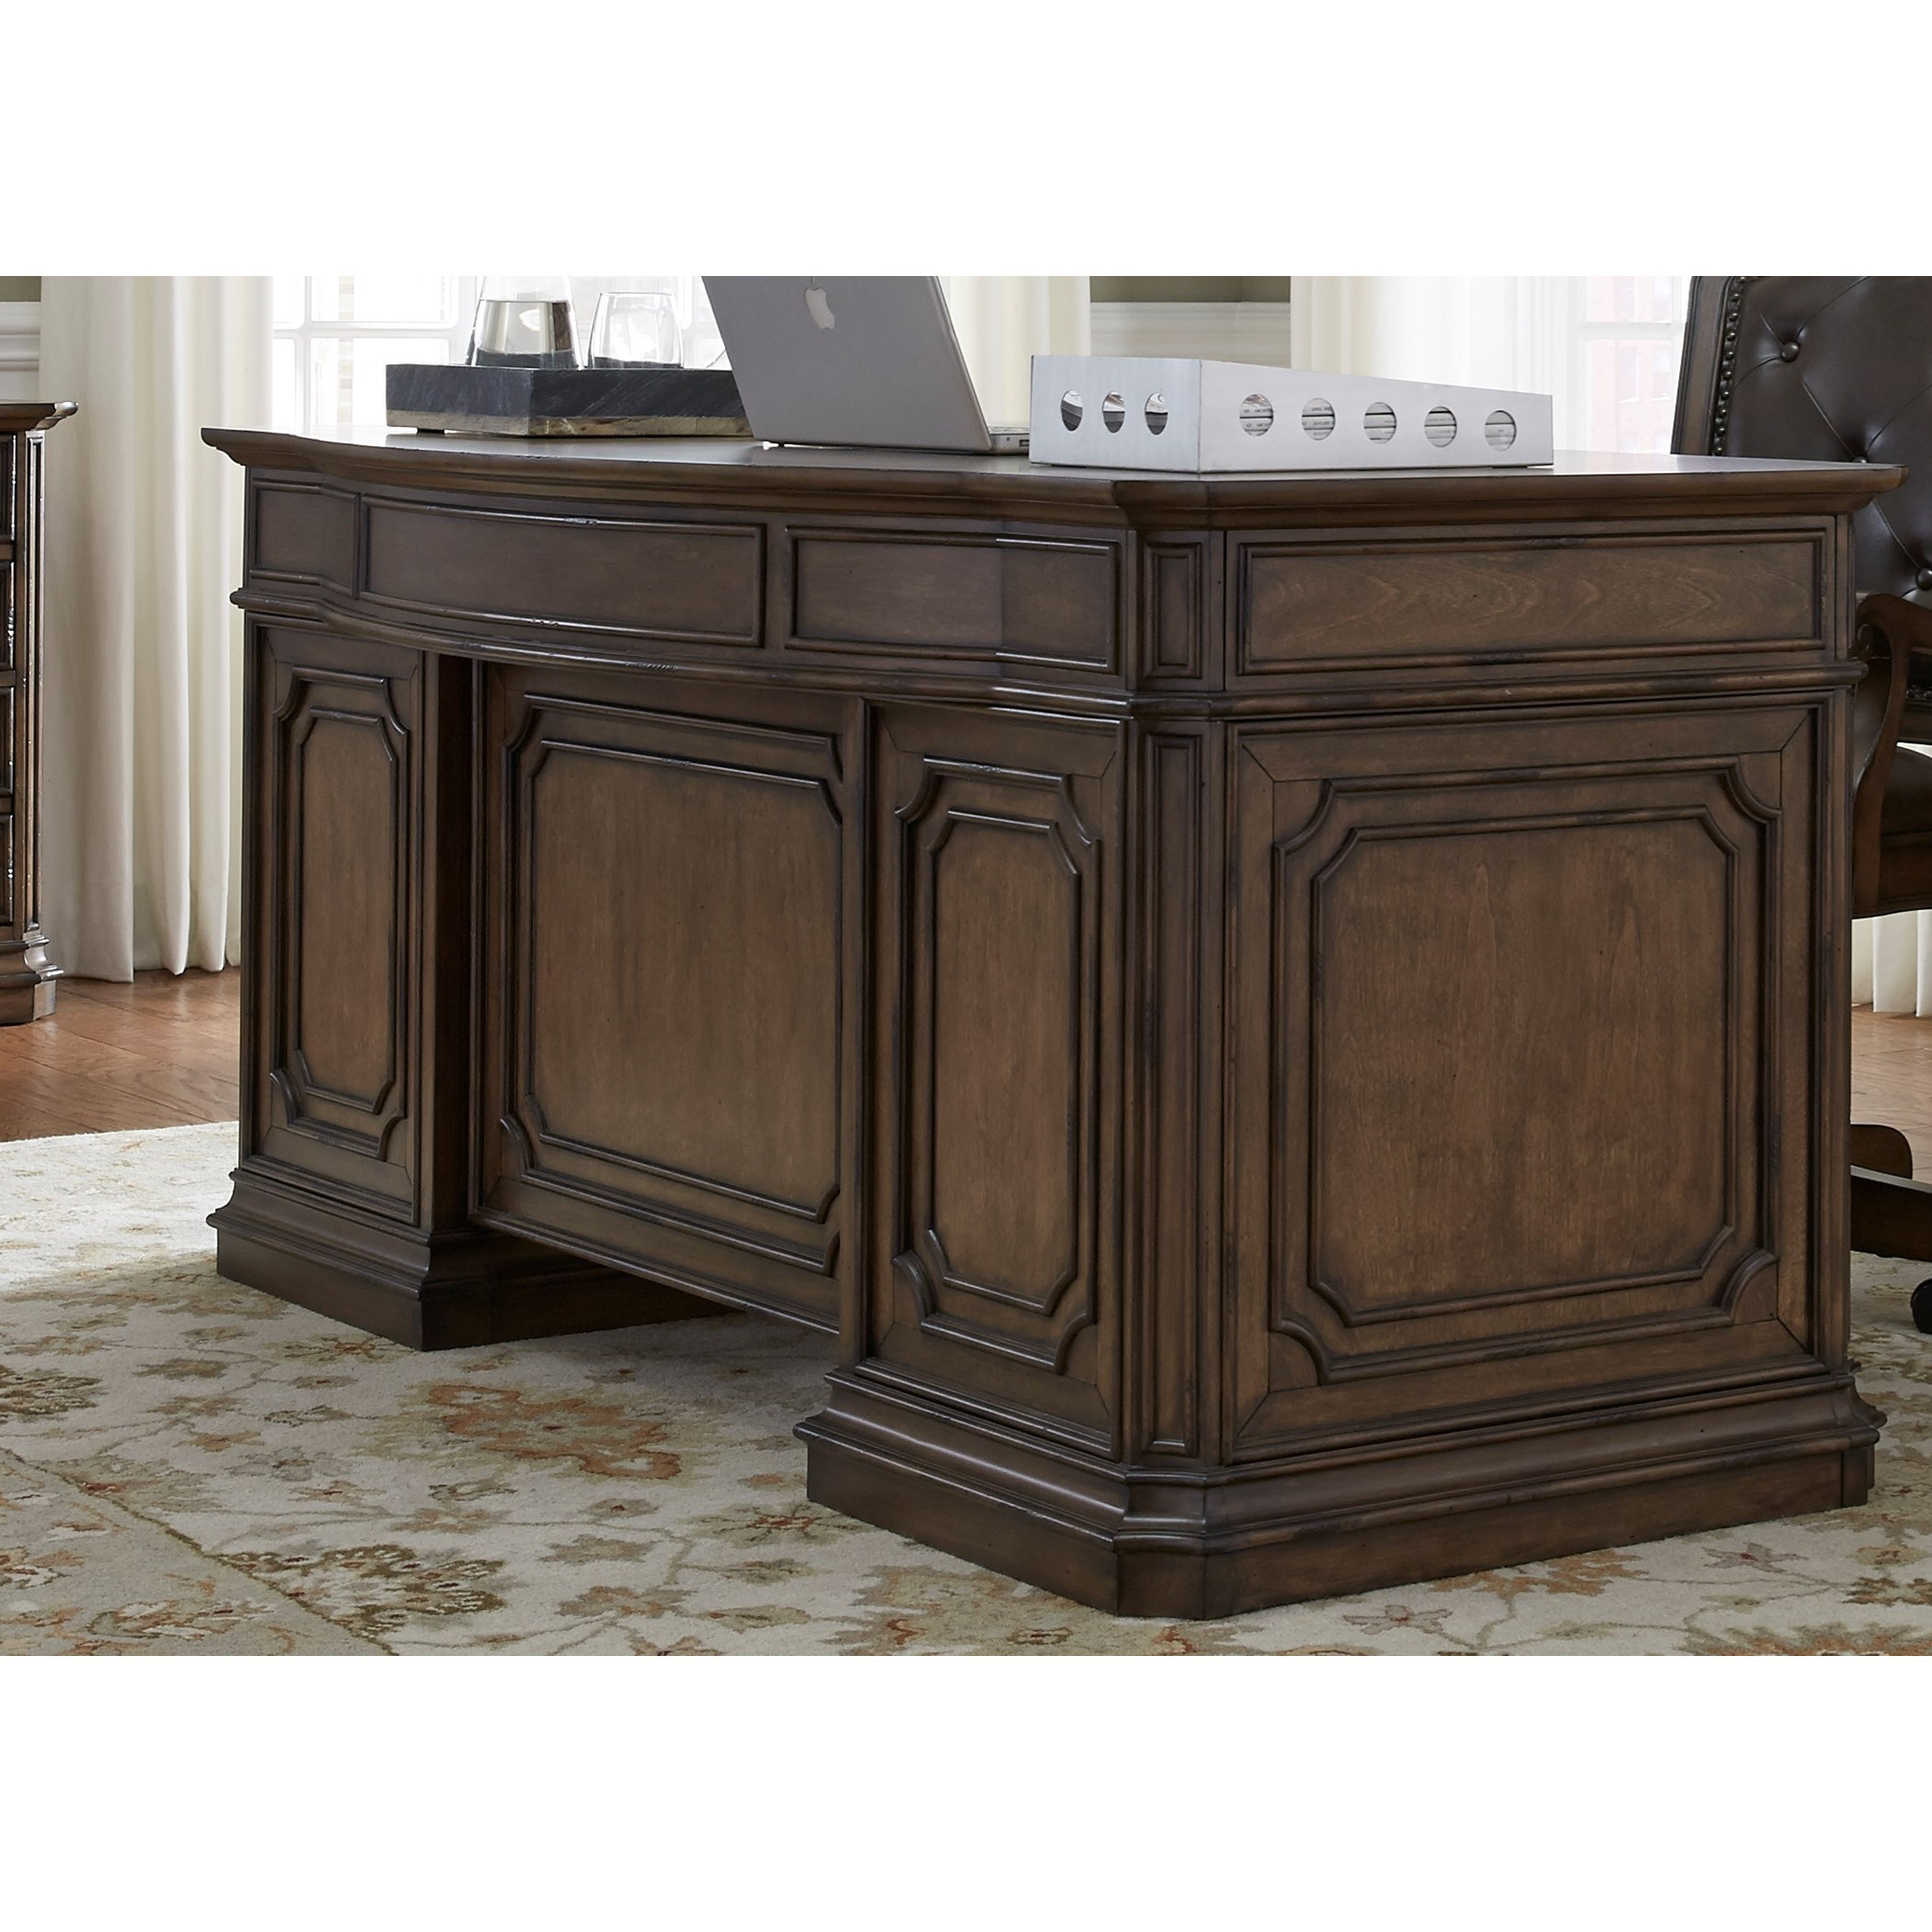 Genial Liberty Furniture Amelia Home Office Traditional Executive Desk With Fully  Stained Interior Drawers